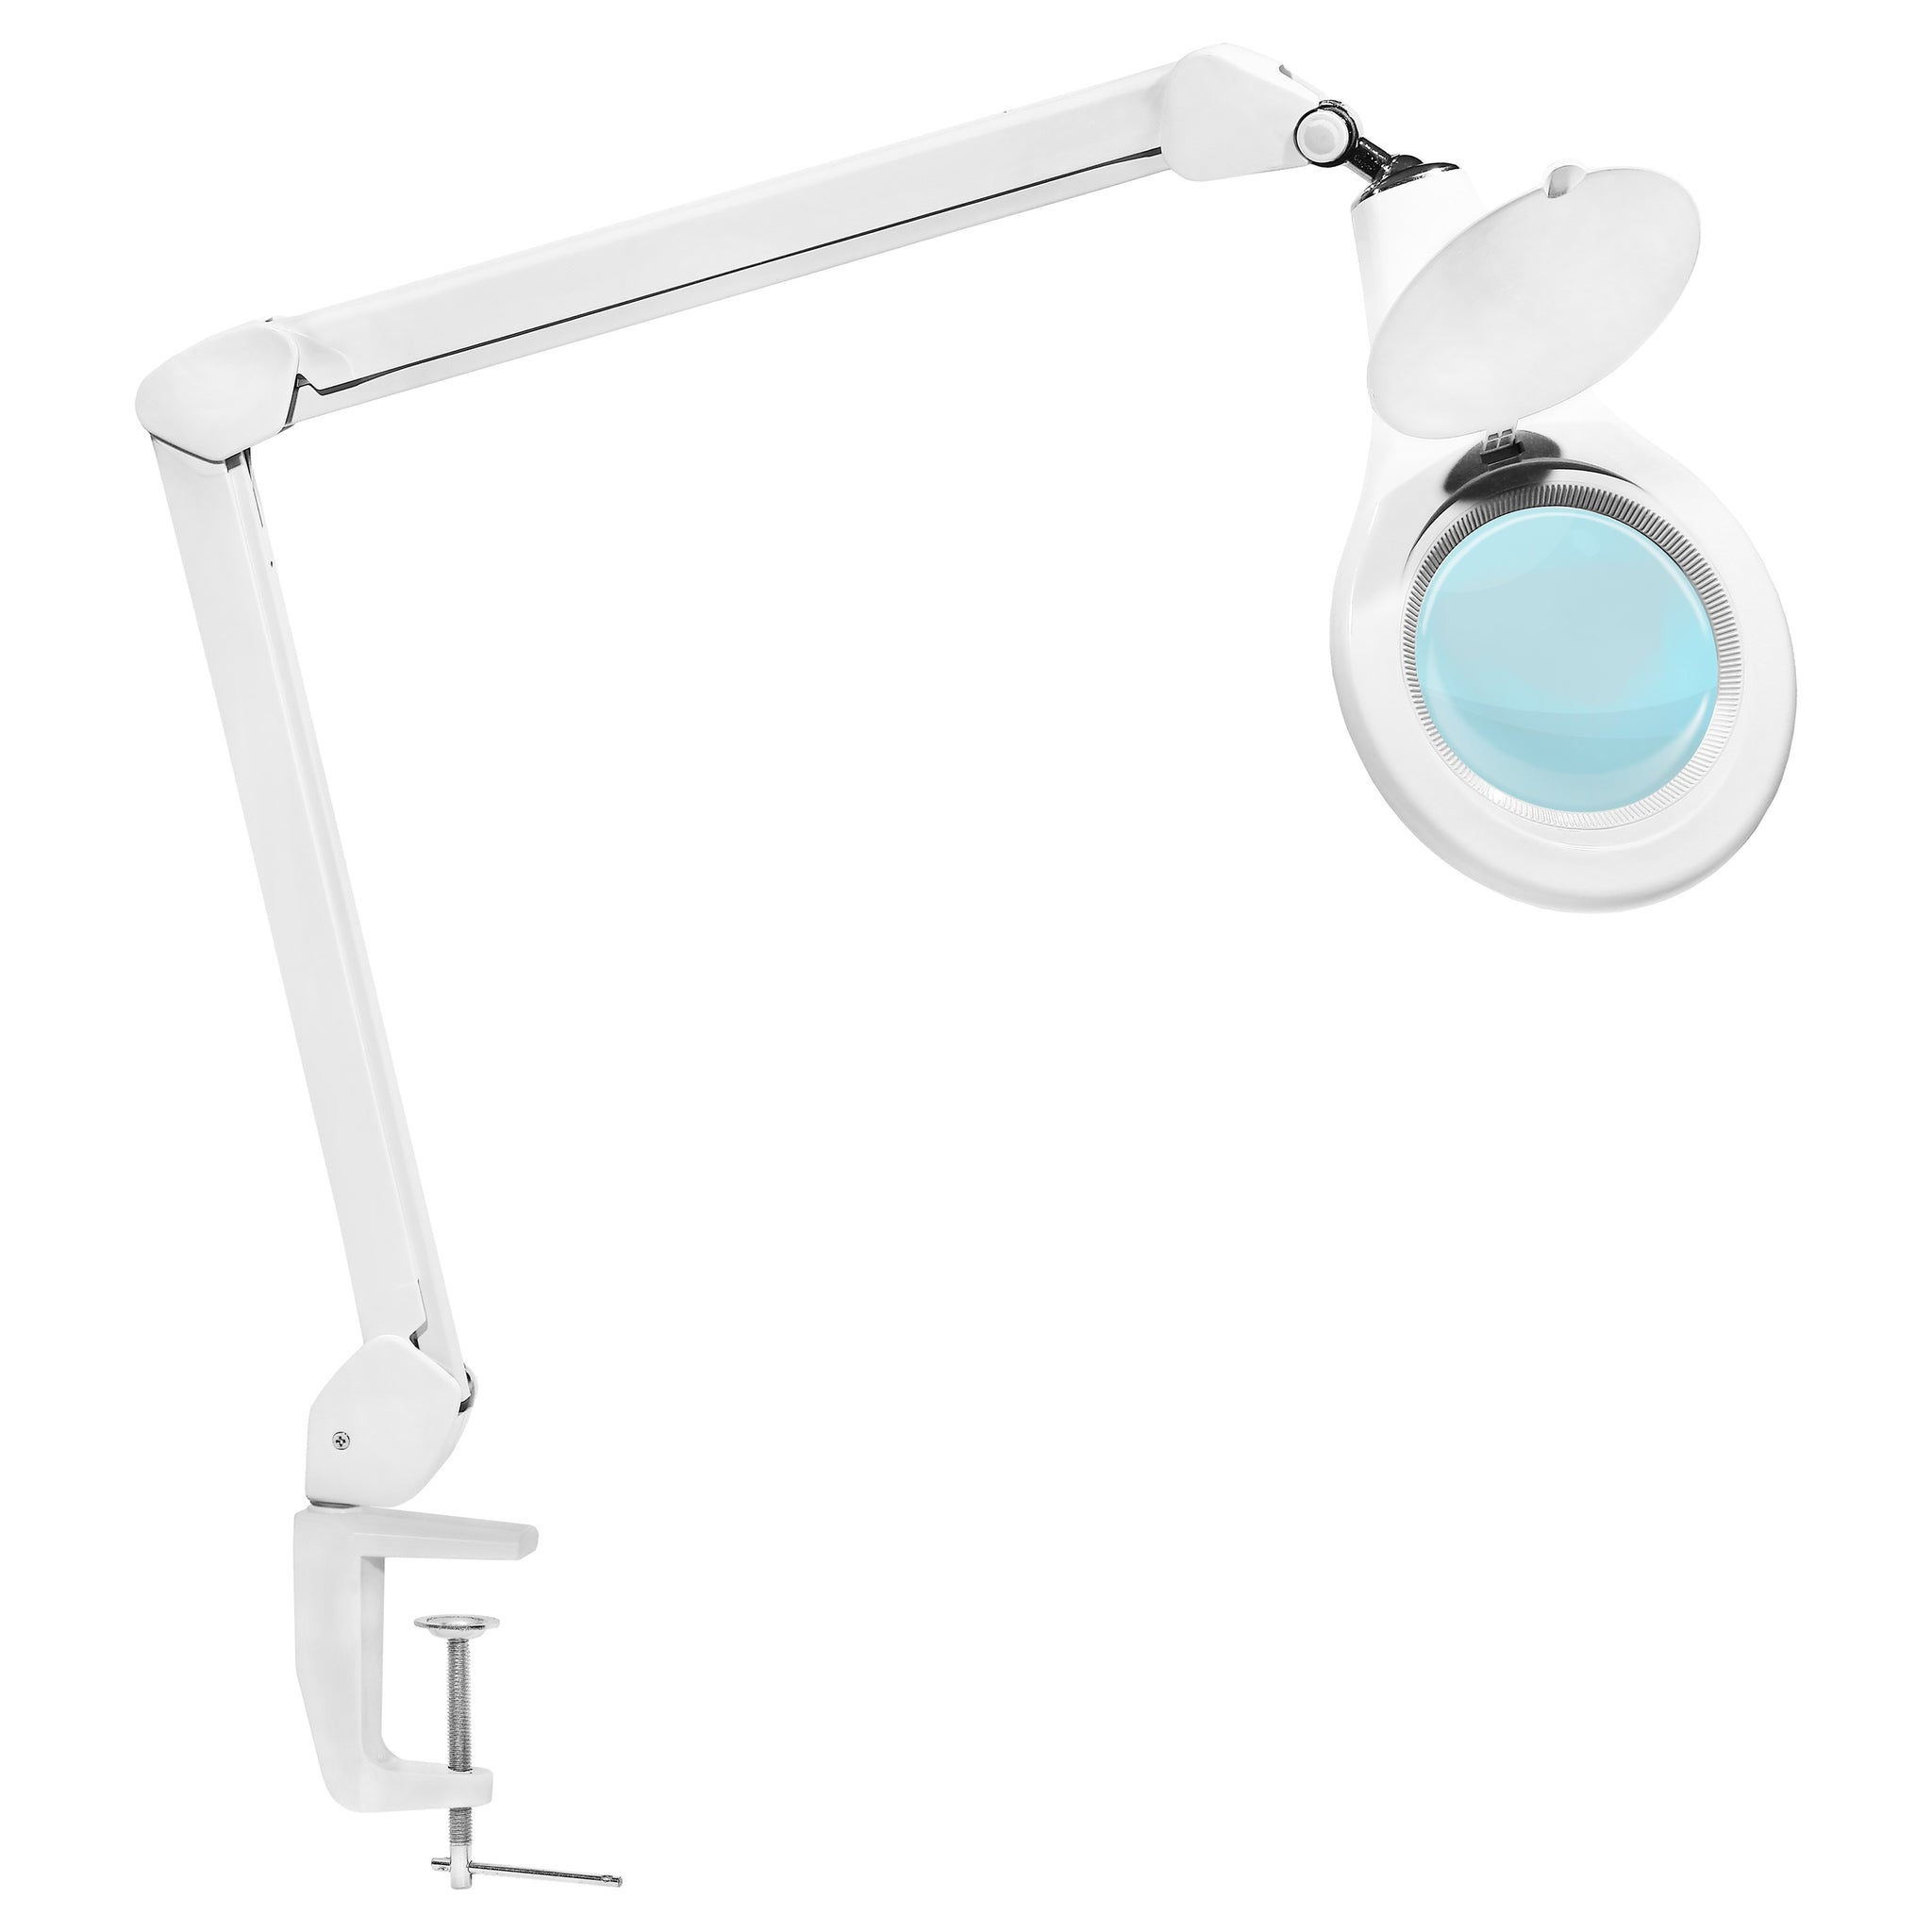 lighting lens newhouse product lamp magnifier adapter ul top table diopter by led magnifying